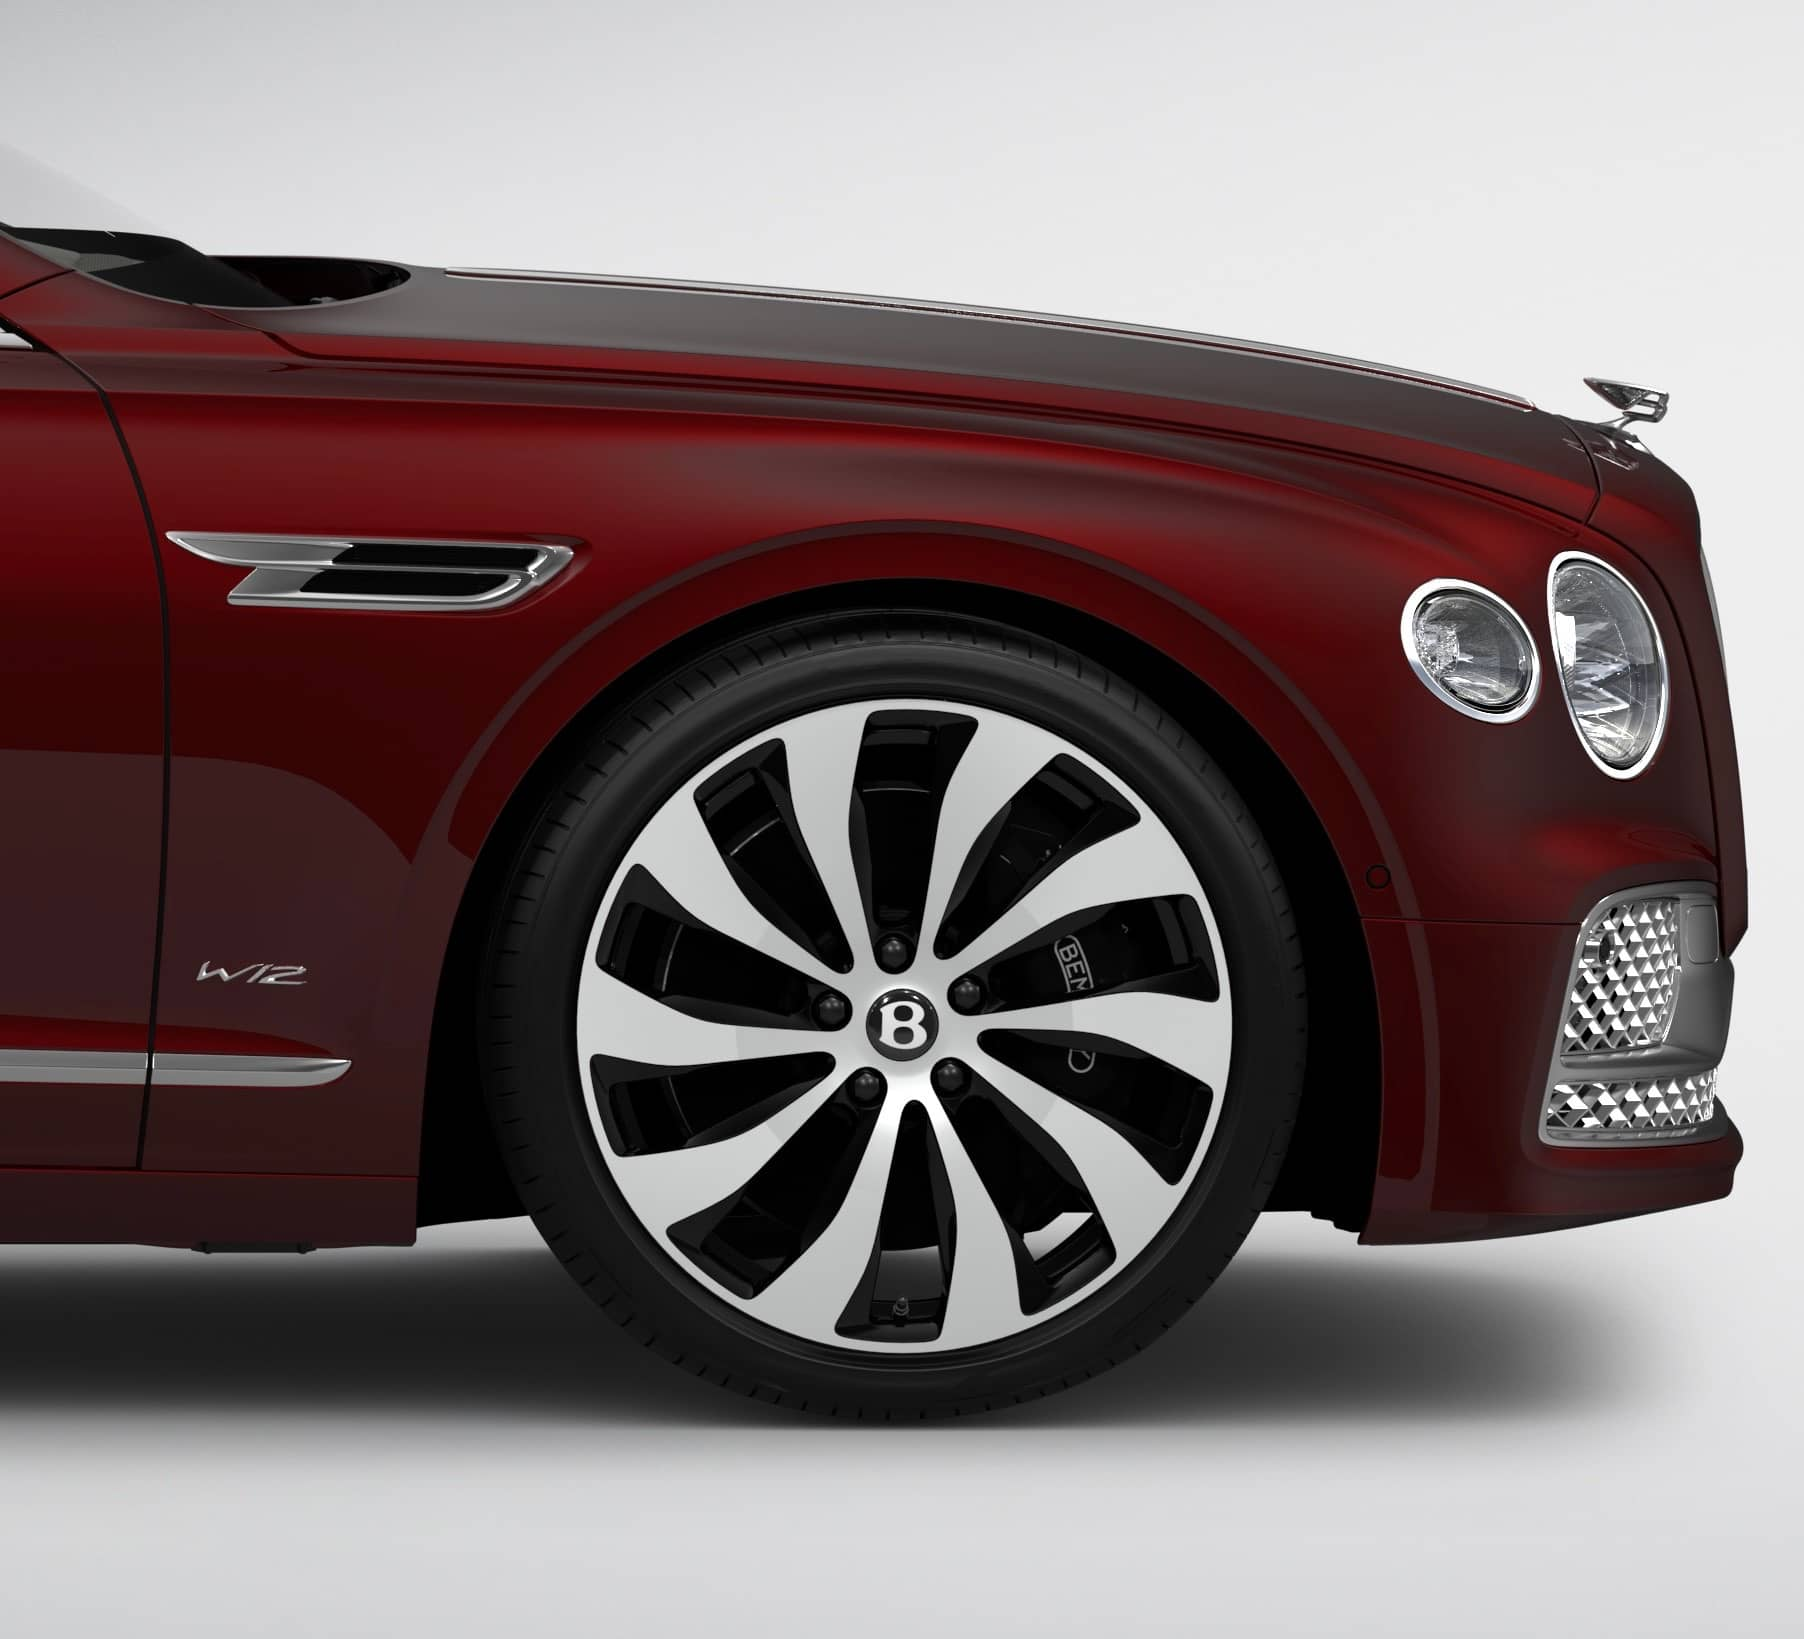 2021-bentley-flying-spur_100751303_h